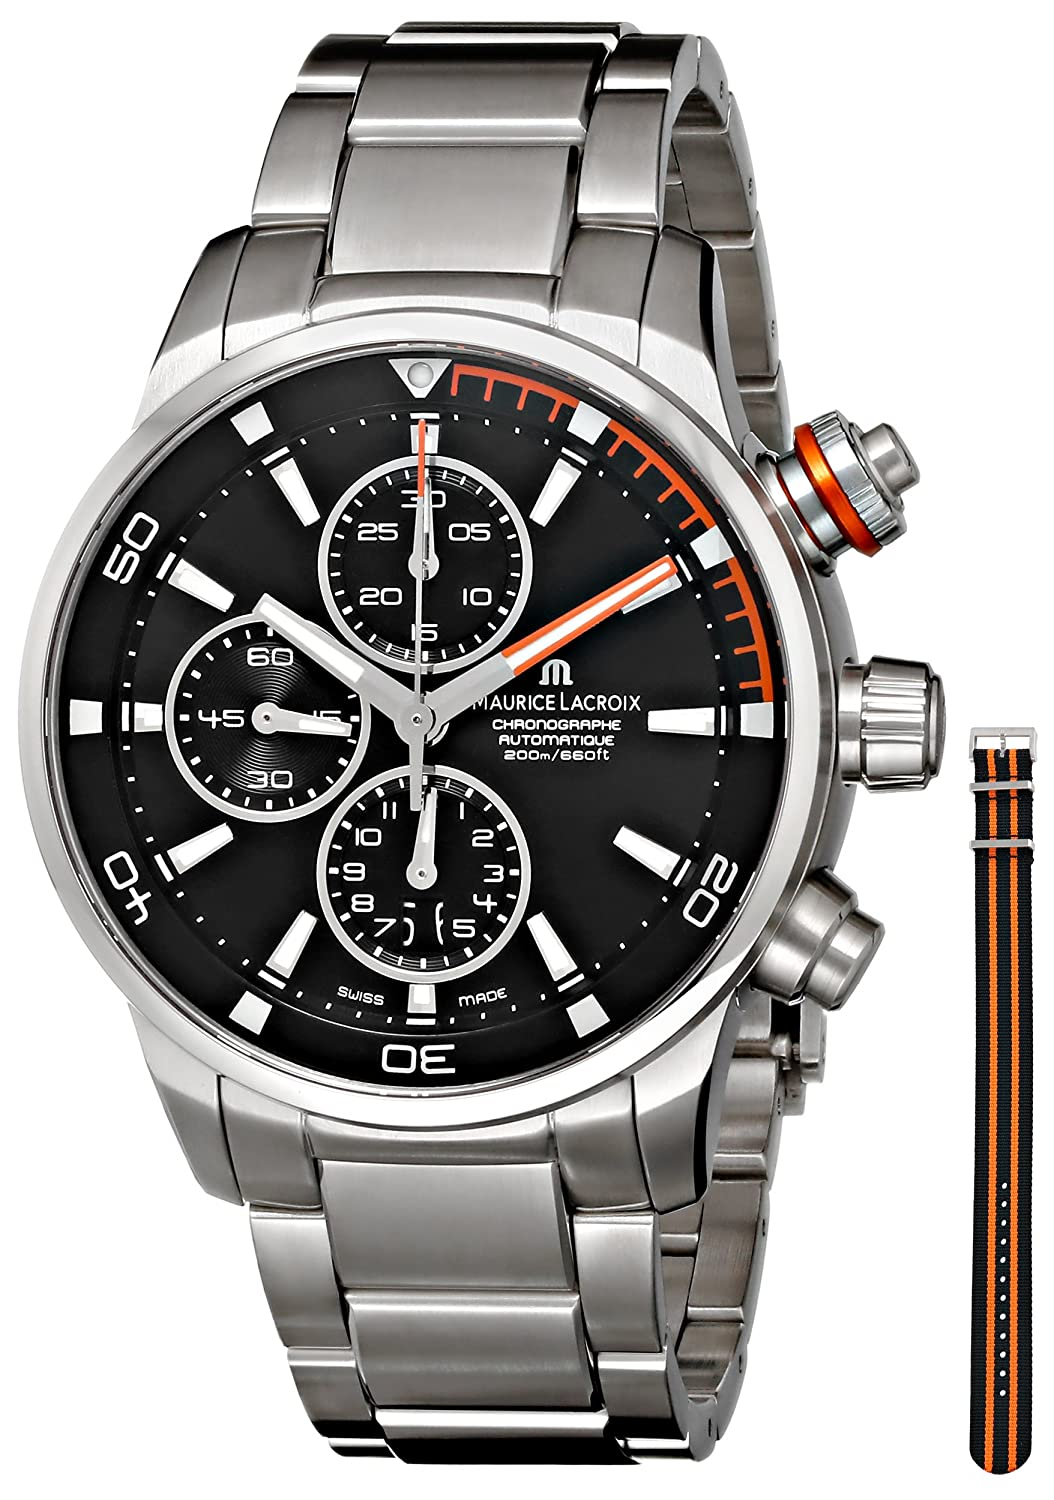 689c768c18dcb Amazon.com  Maurice Lacroix Men s PT6008-SS002-332 Pontos Analog Display  Swiss Automatic Silver Watch  Watches